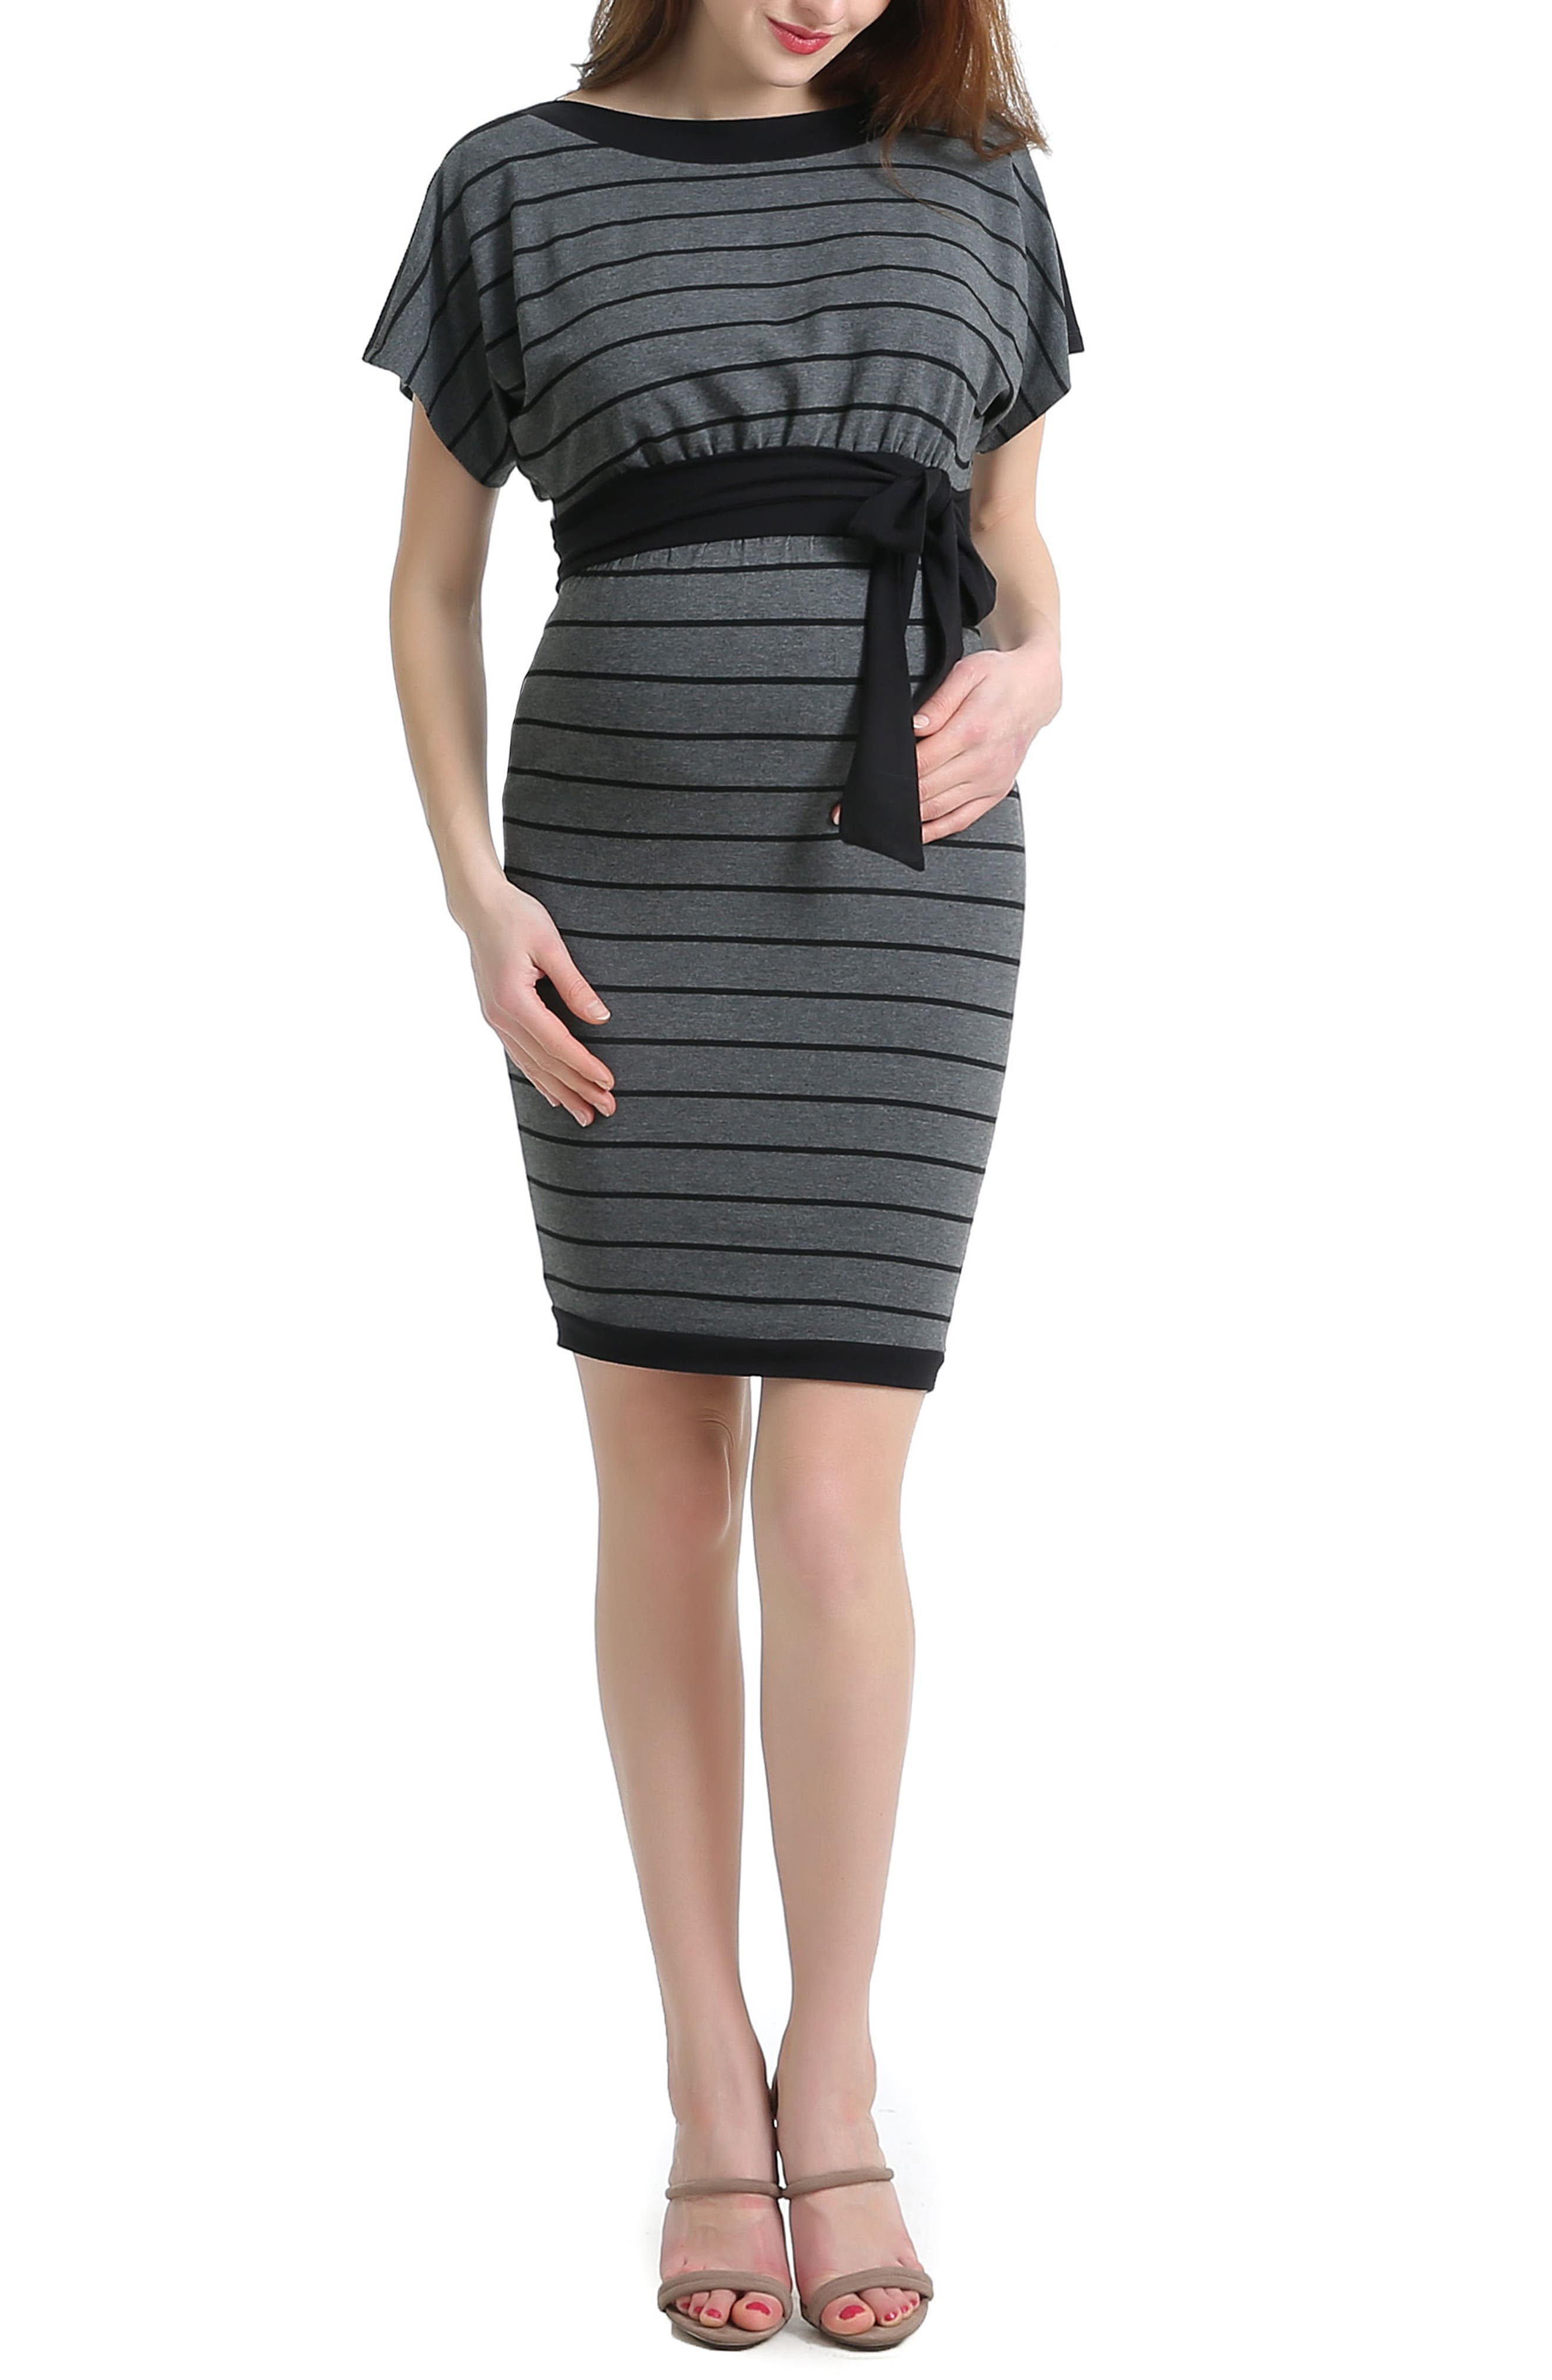 Anna Stretch Maternity Dress,                             Main thumbnail 1, color,                             BLACK/ GRAY